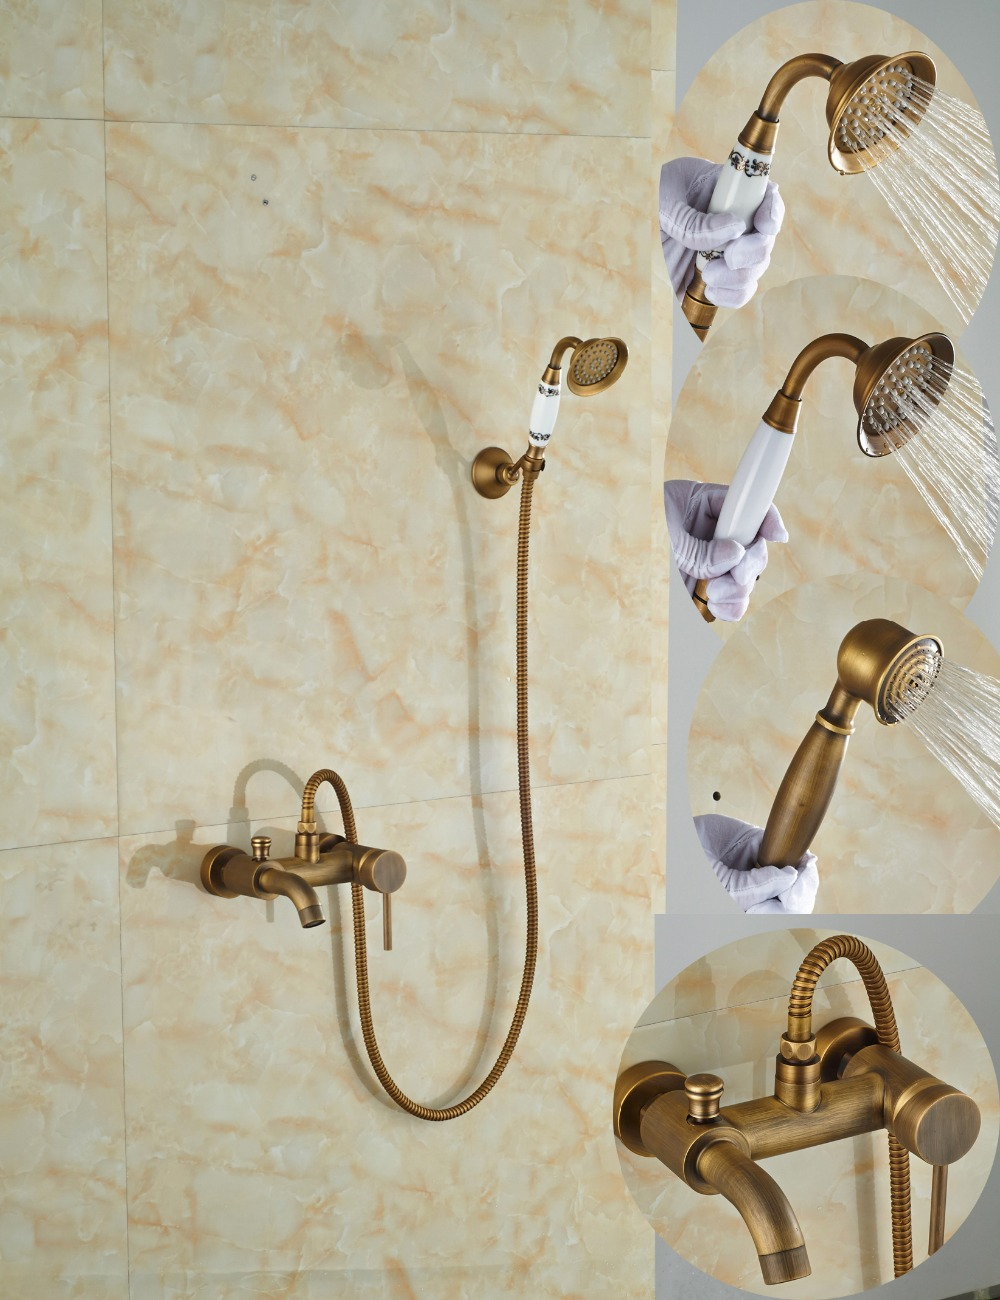 2016 Modern Antique Brass Bathroom Tub Faucet Single Handle Dual Holes Tub Spout Mixer Tap W/ Hand Shower wall mount single handle bath shower faucet with handshower antique brass bathroom shower mixer tap